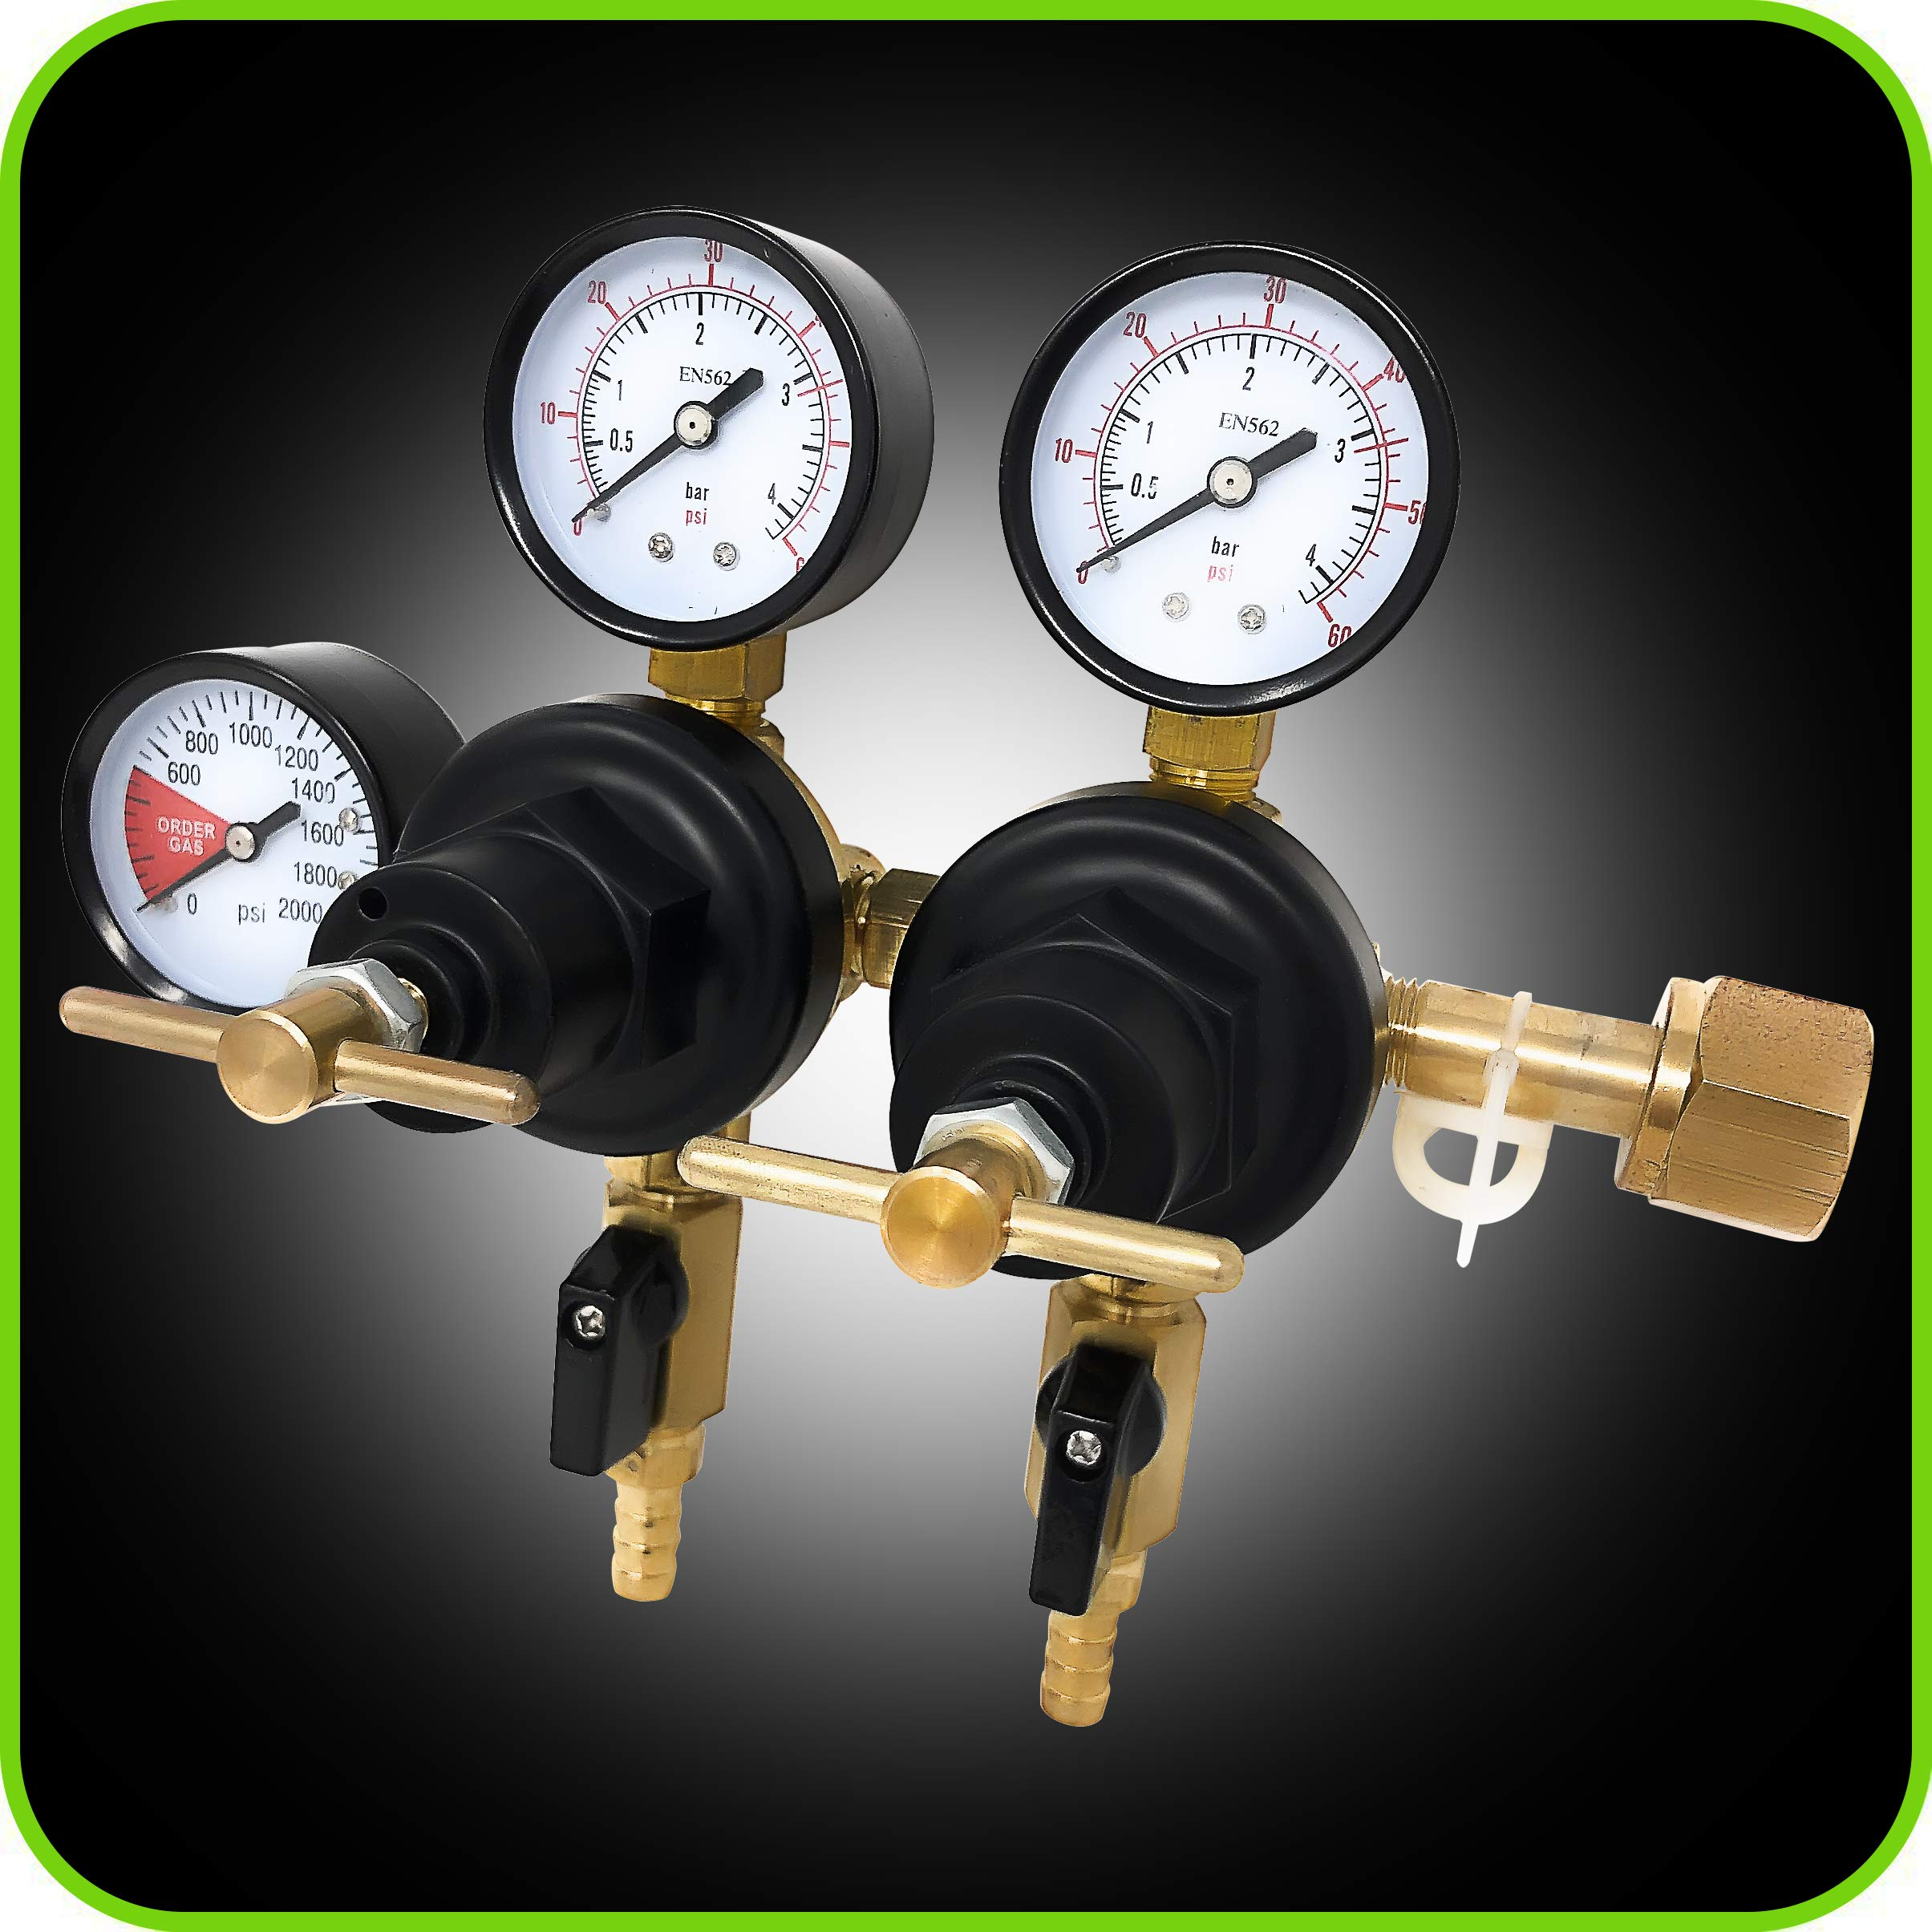 Co2 Beer Regulator Two Product Dual Pressure Kegerator Heavy Duty Features T-Style Adjusting Handle - 0 to 60 PSI-0 to 2000 Tank Pressure CGA-320 Inlet w/ 3/8'' O.D. Safety Discharge 50-55 PSI by Manatee (Image #4)